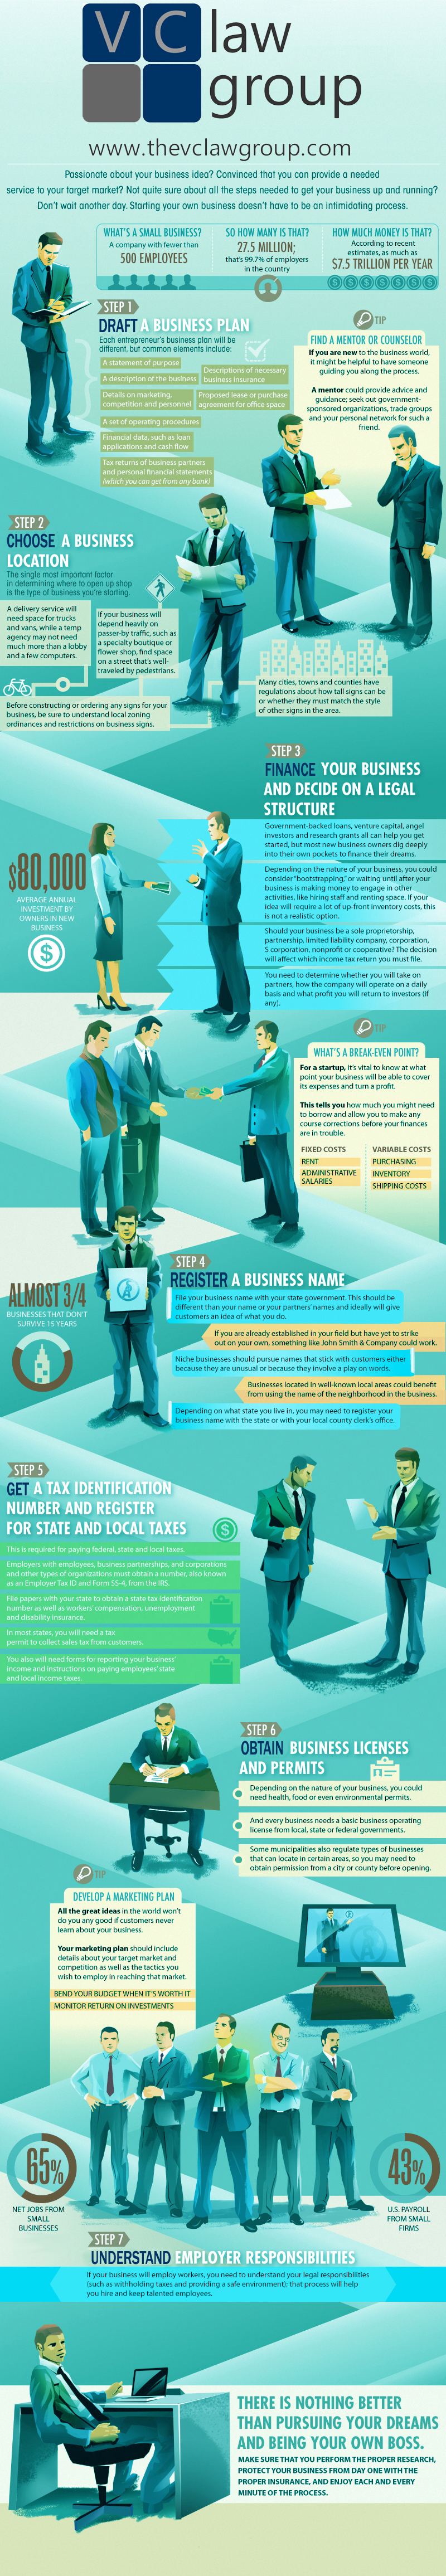 Starting a small business infographic